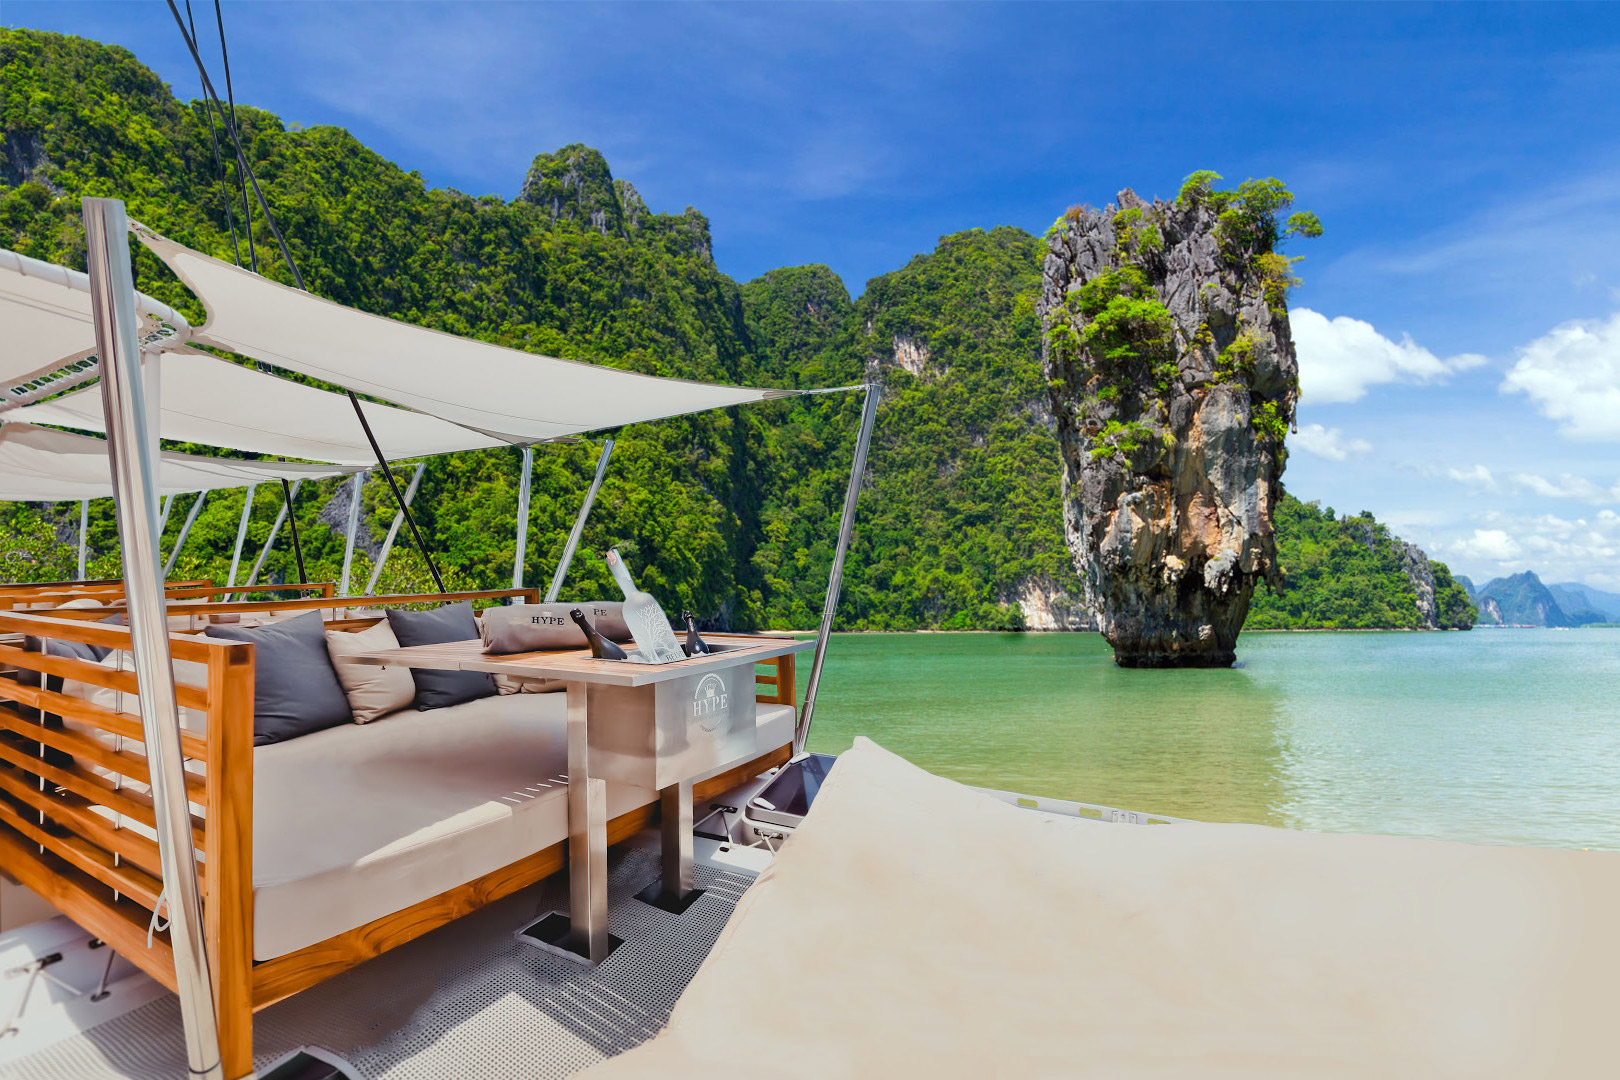 Hype Luxury Boat Club, Phuket, Thailand